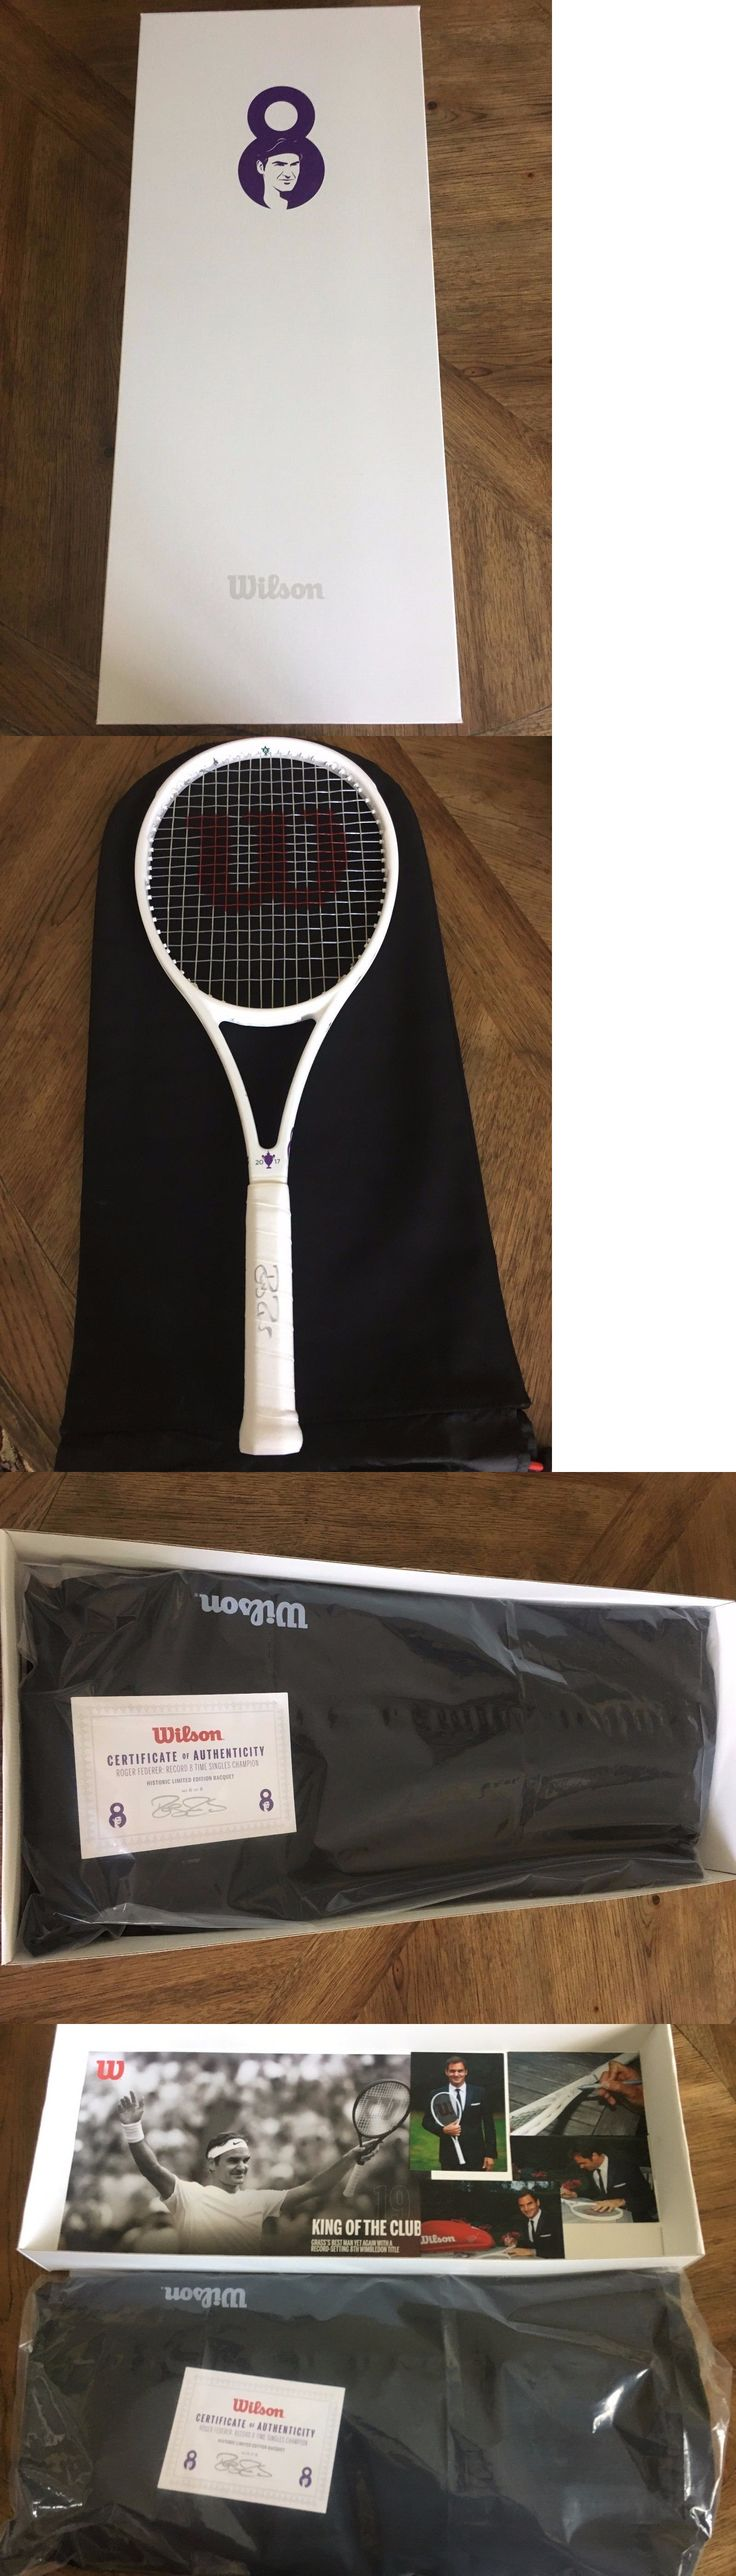 Racquets 20871: Roger Federer Limited Wimbledon Wilson Pro Staff Rf 97 8Th Gs Signed Racquet -> BUY IT NOW ONLY: $250000 on eBay!